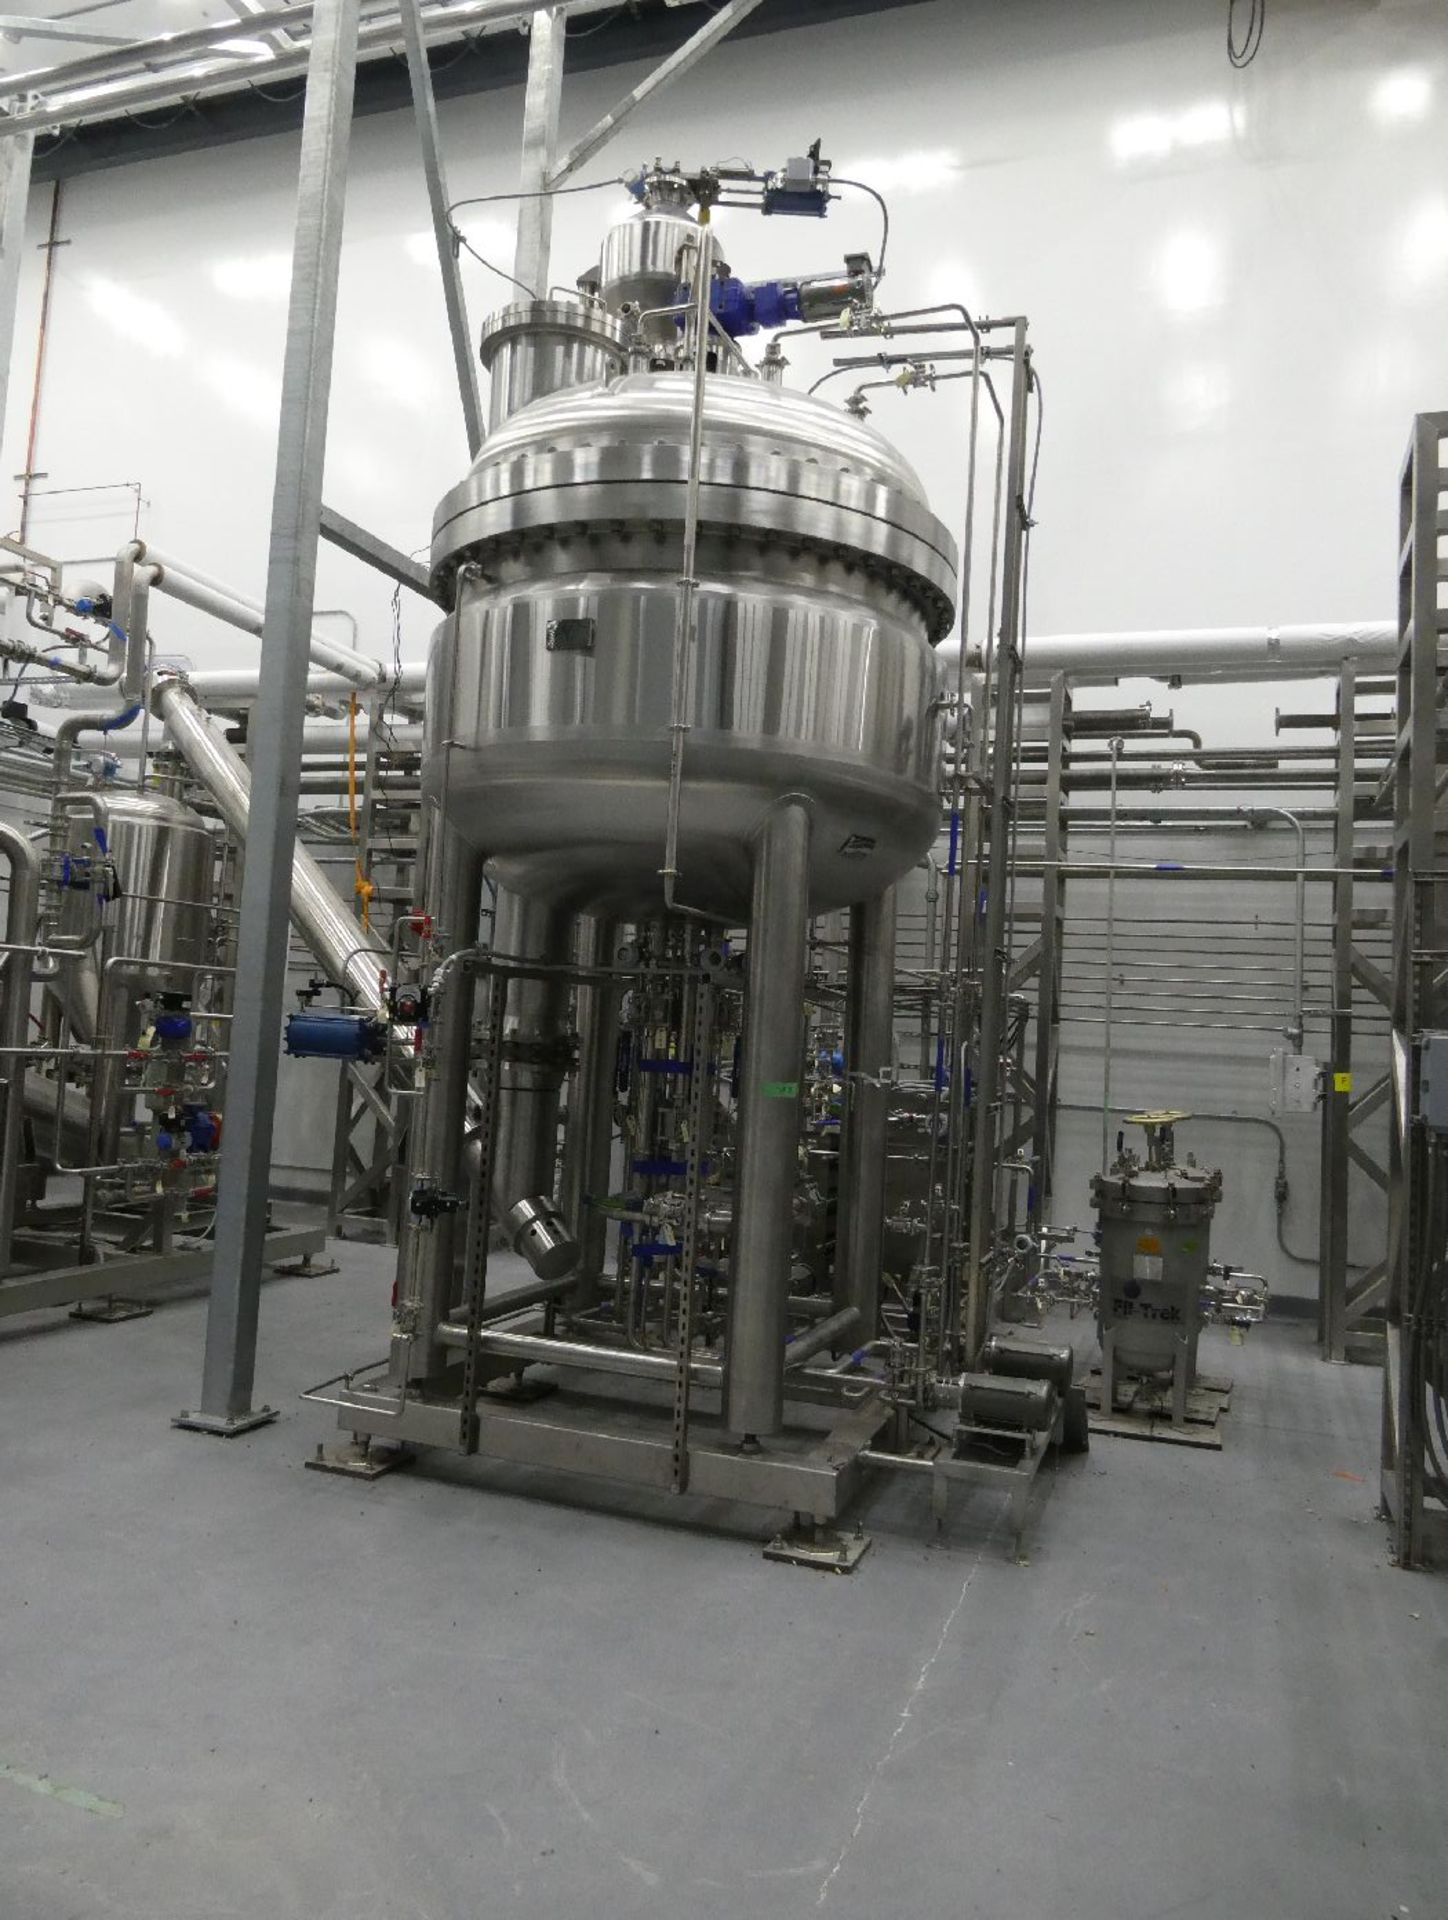 ROTAX Closed Loop Solvent Based Continuous Oil Extraction System - Image 12 of 68